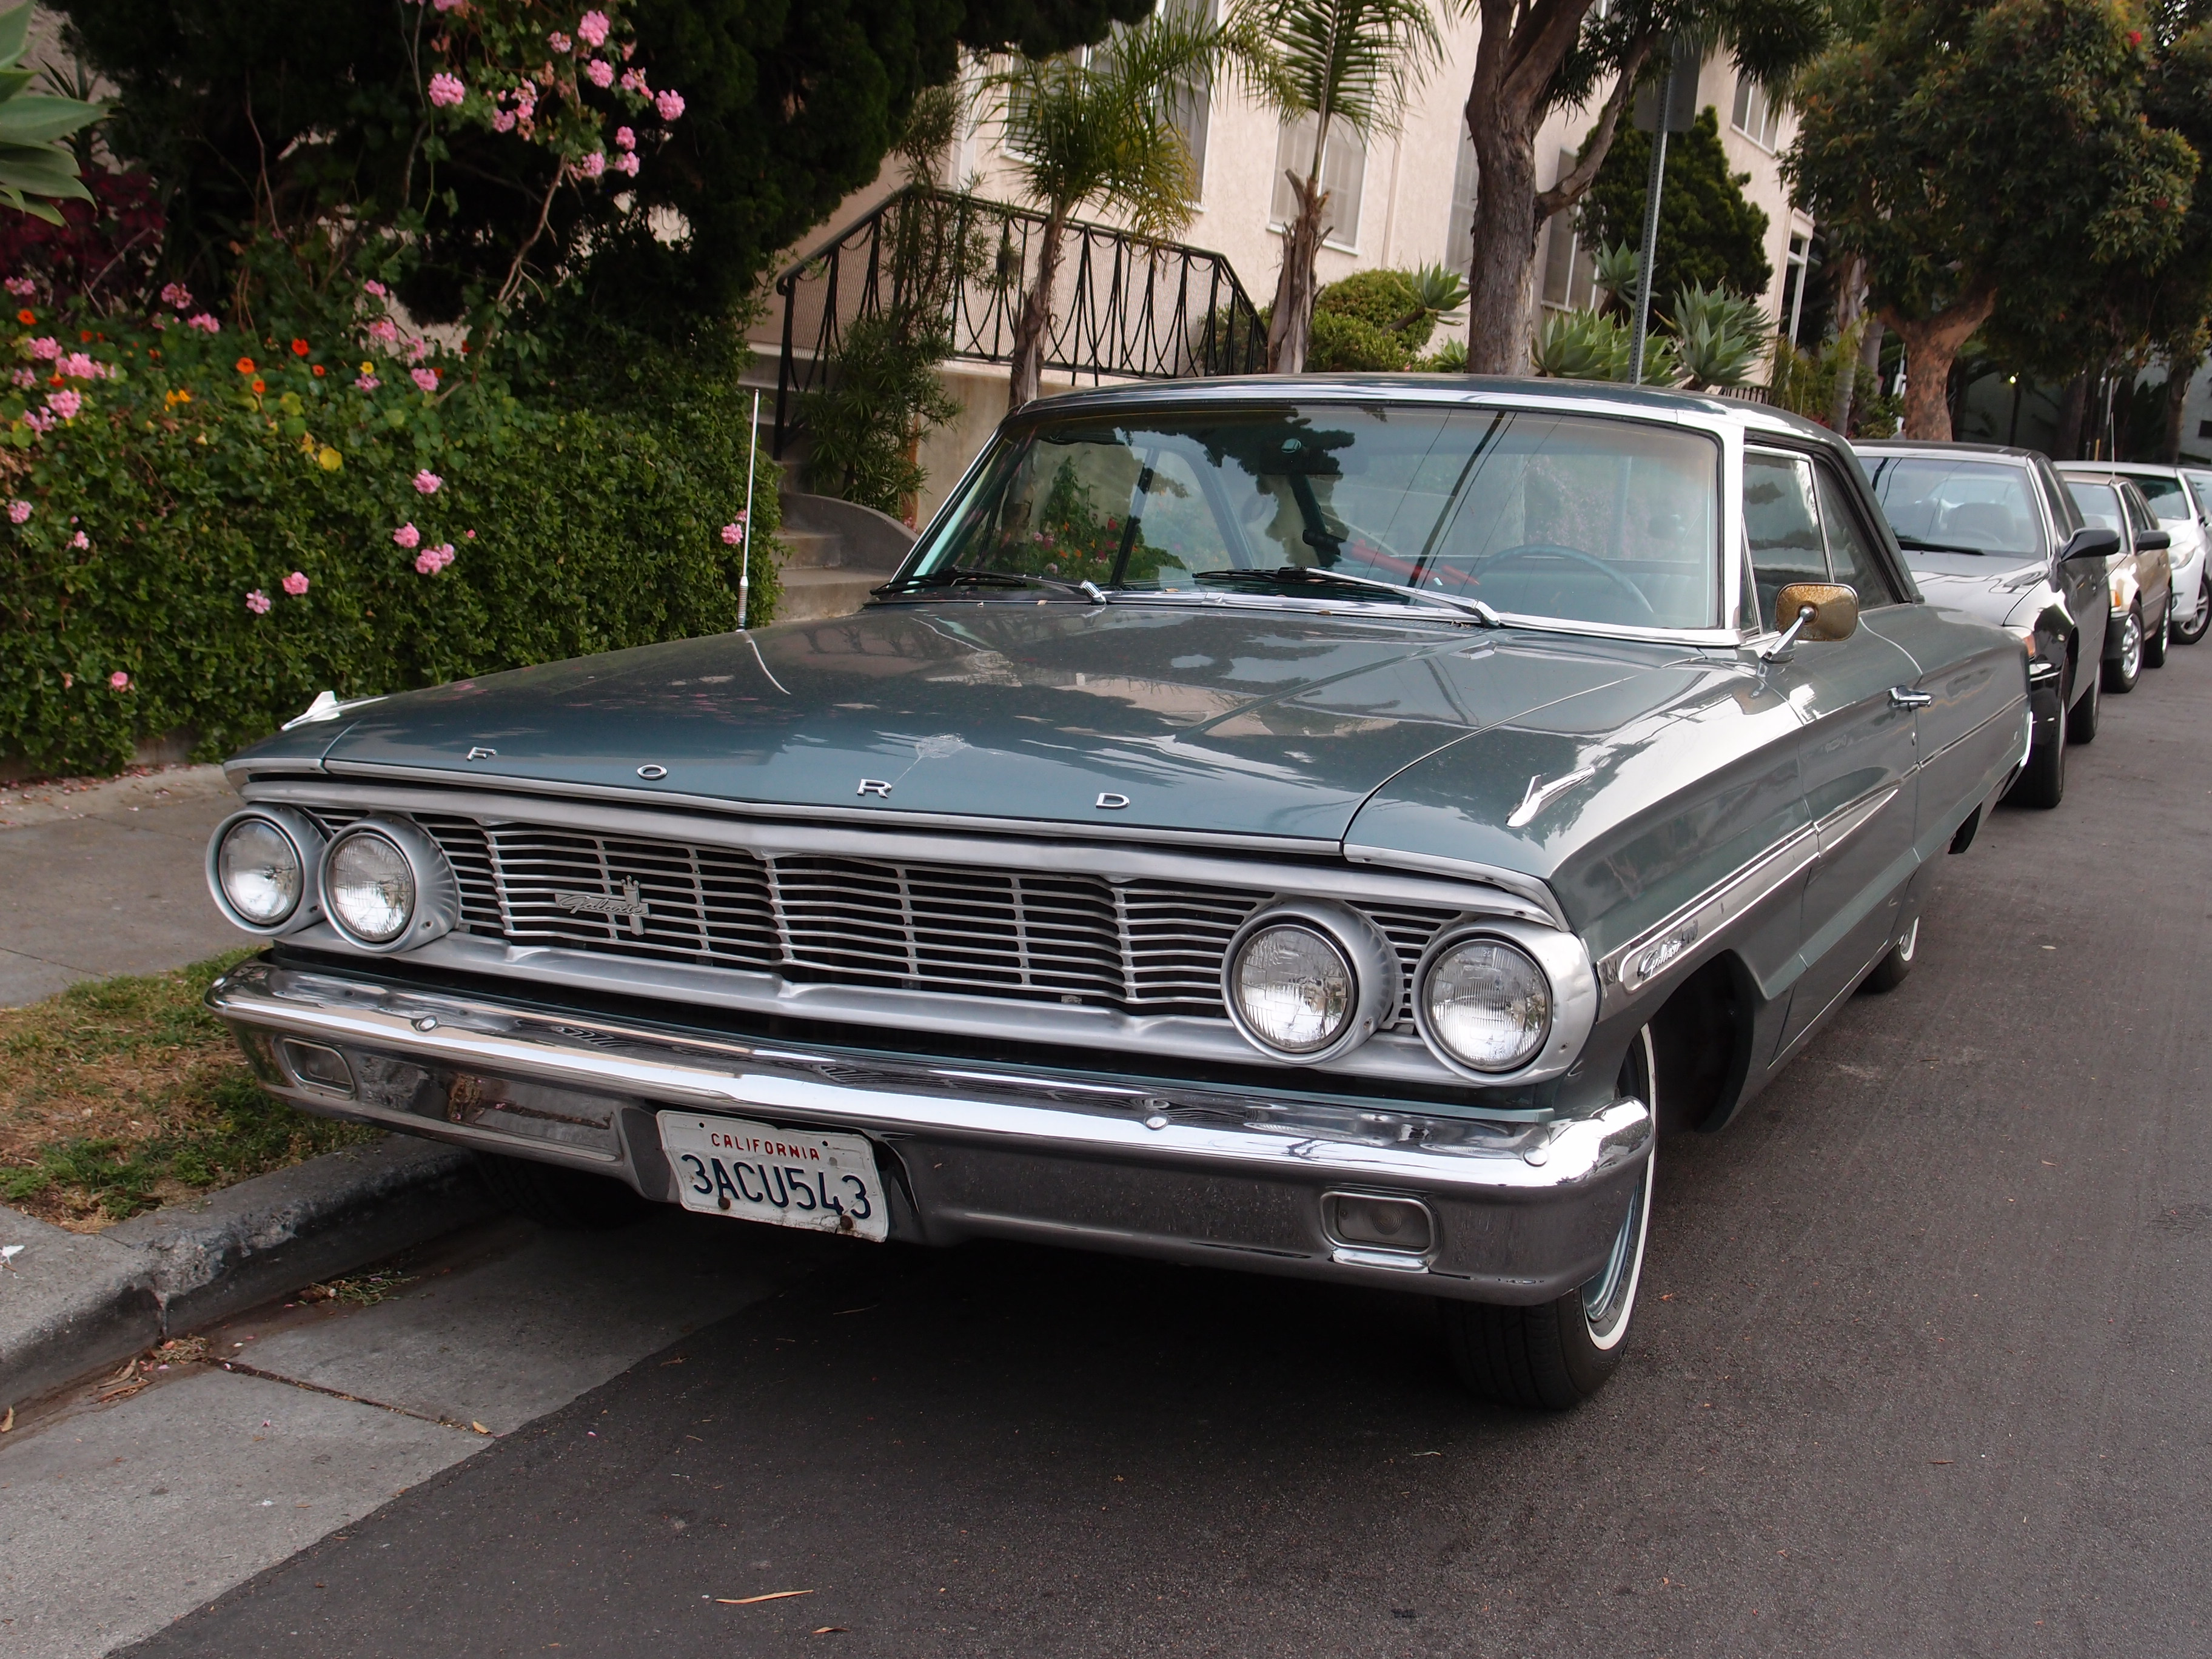 1964 Ford Galaxie 500 Roadside Rambler